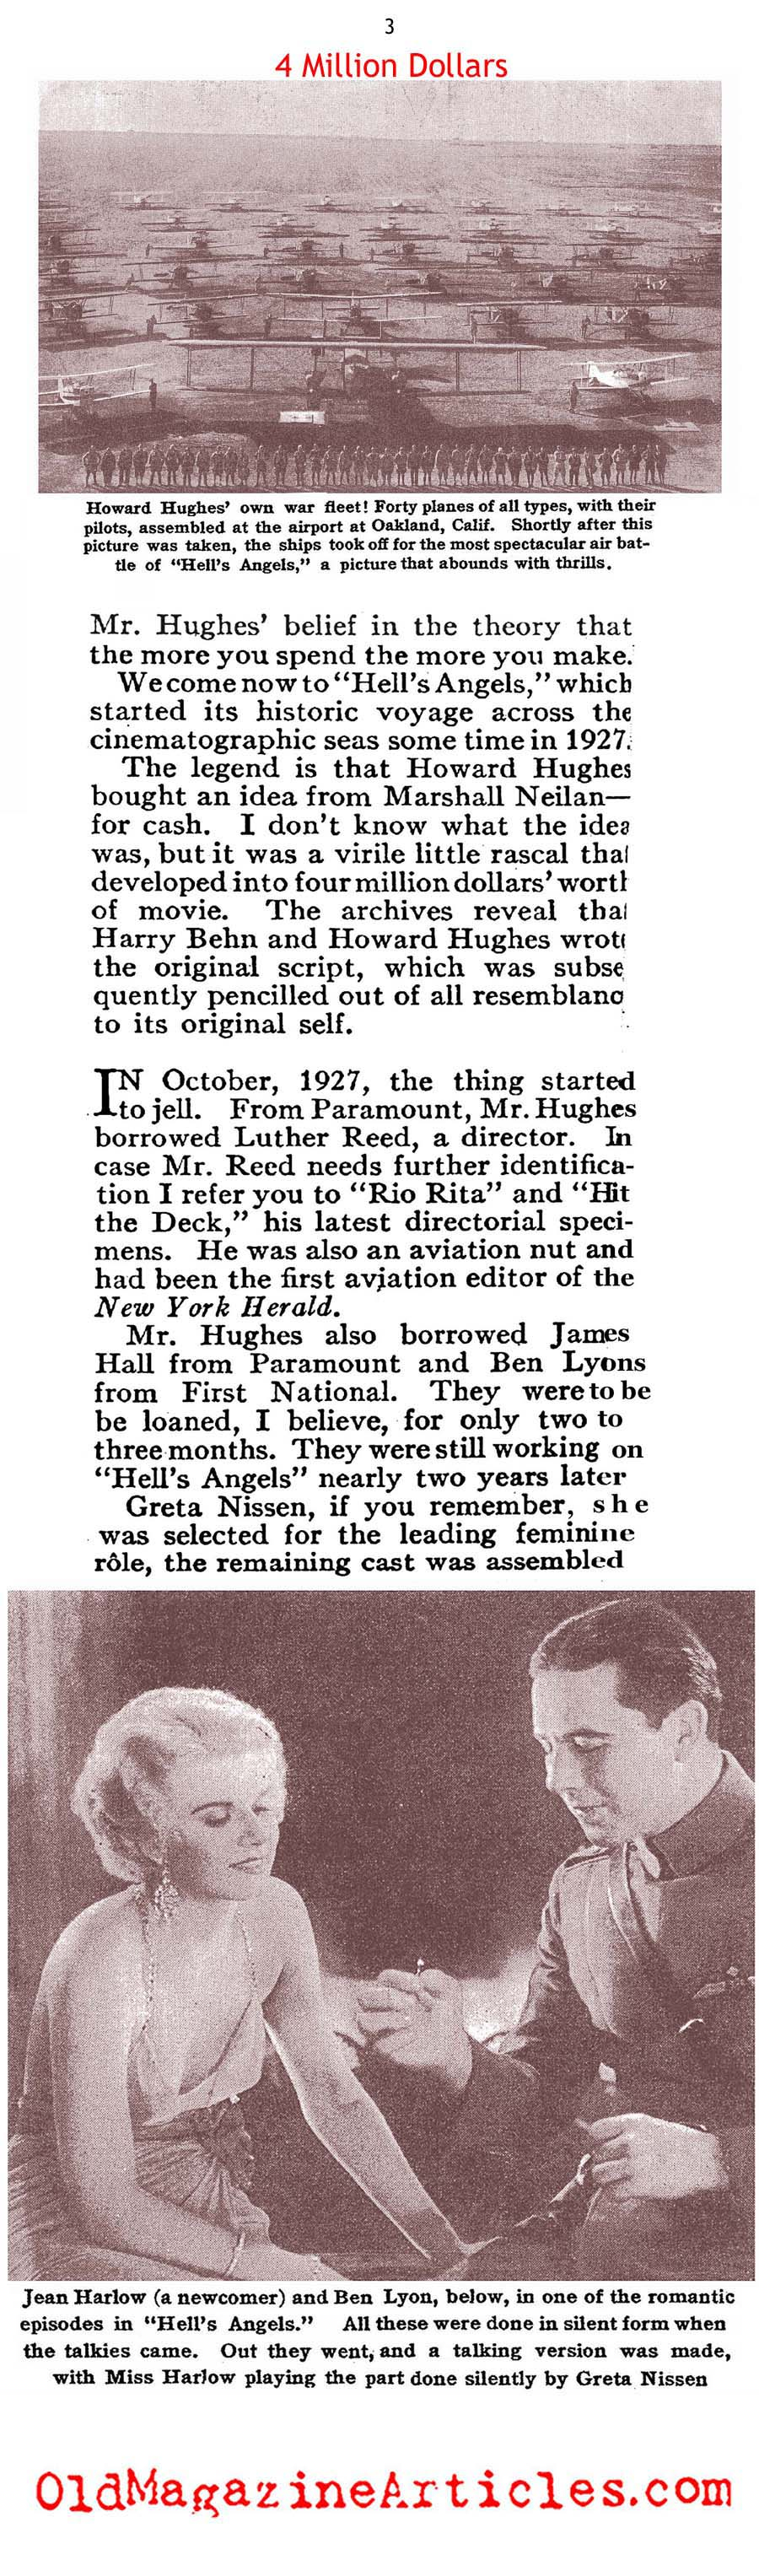 Howard Hughs and HELL'S ANGELS (Photoplay Magazine, 1930)